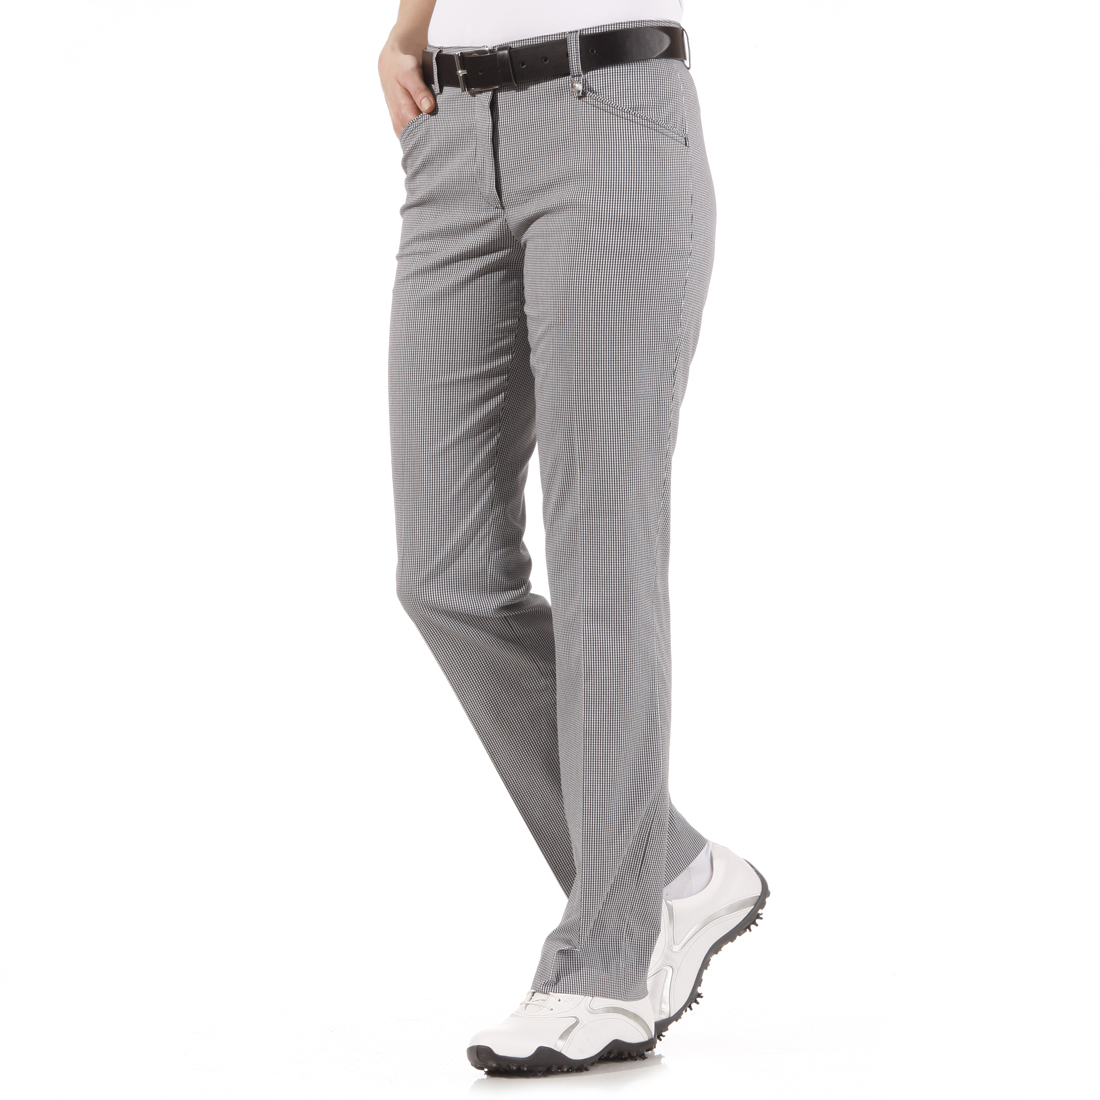 Stretchhose mit Vichy-Muster